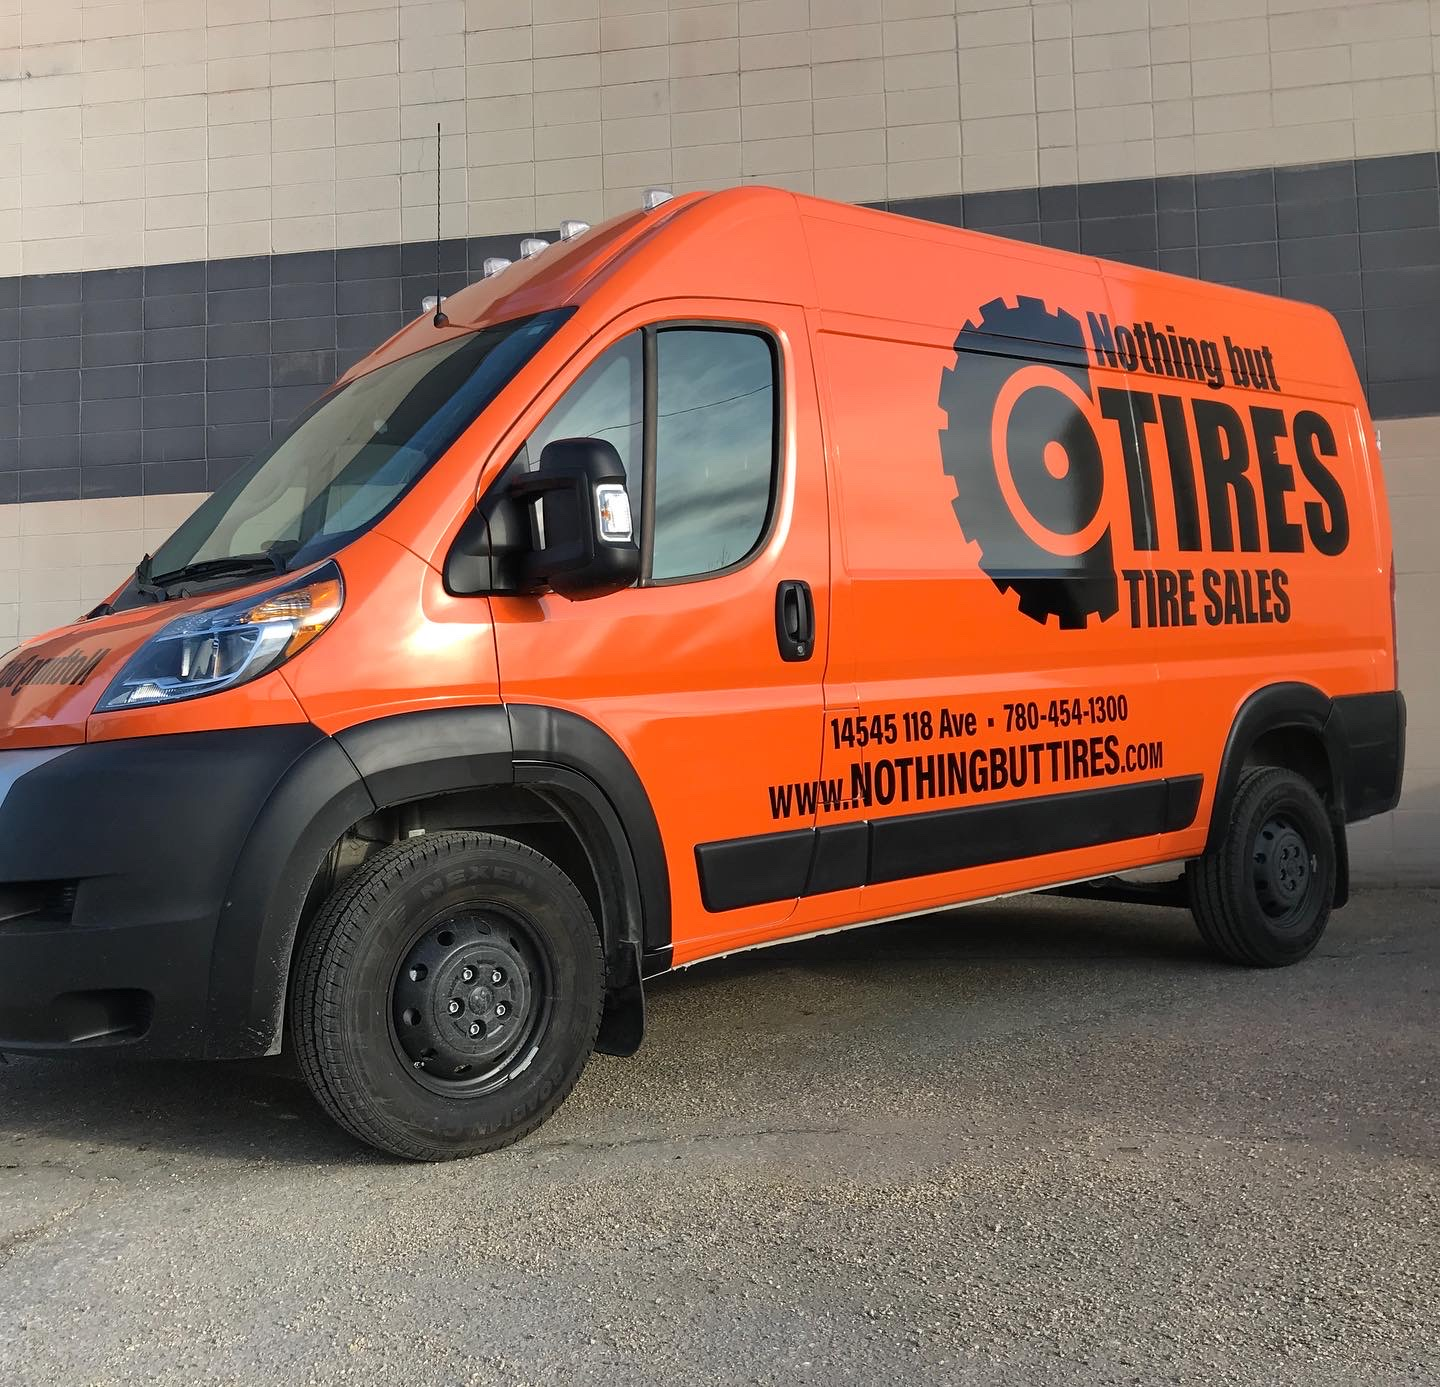 Commercial vehicle wraps and graphics for NBT in Edmonton, Alberta